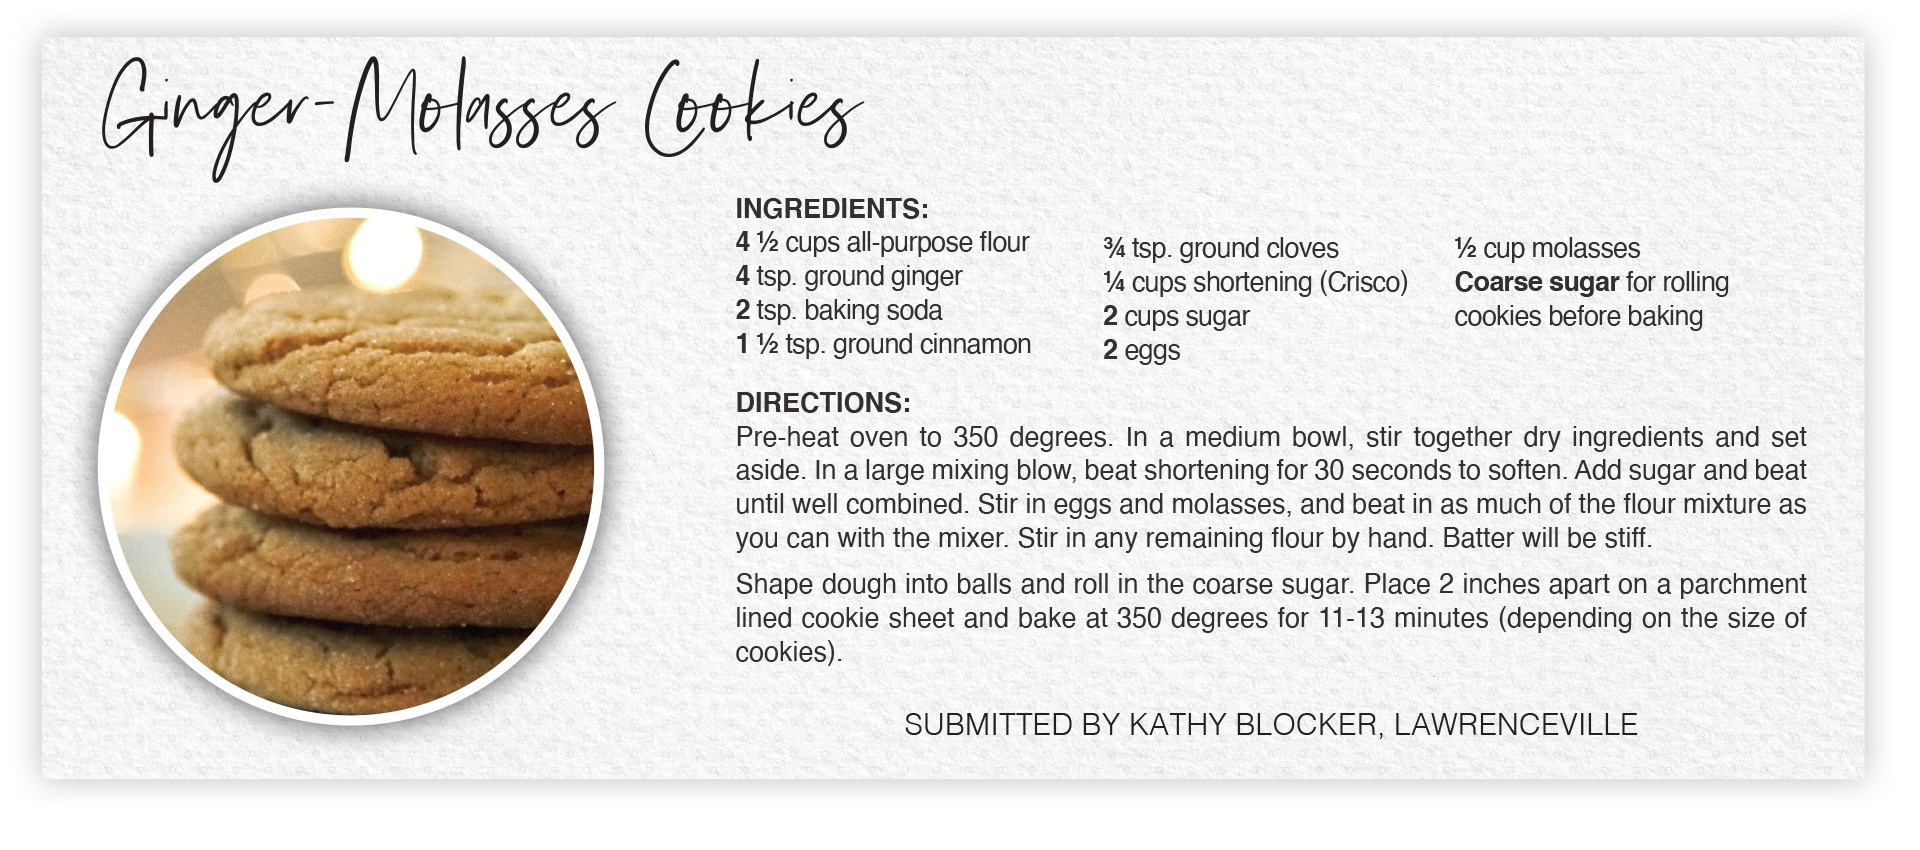 Ginger-molasses-cookies-recipe-card